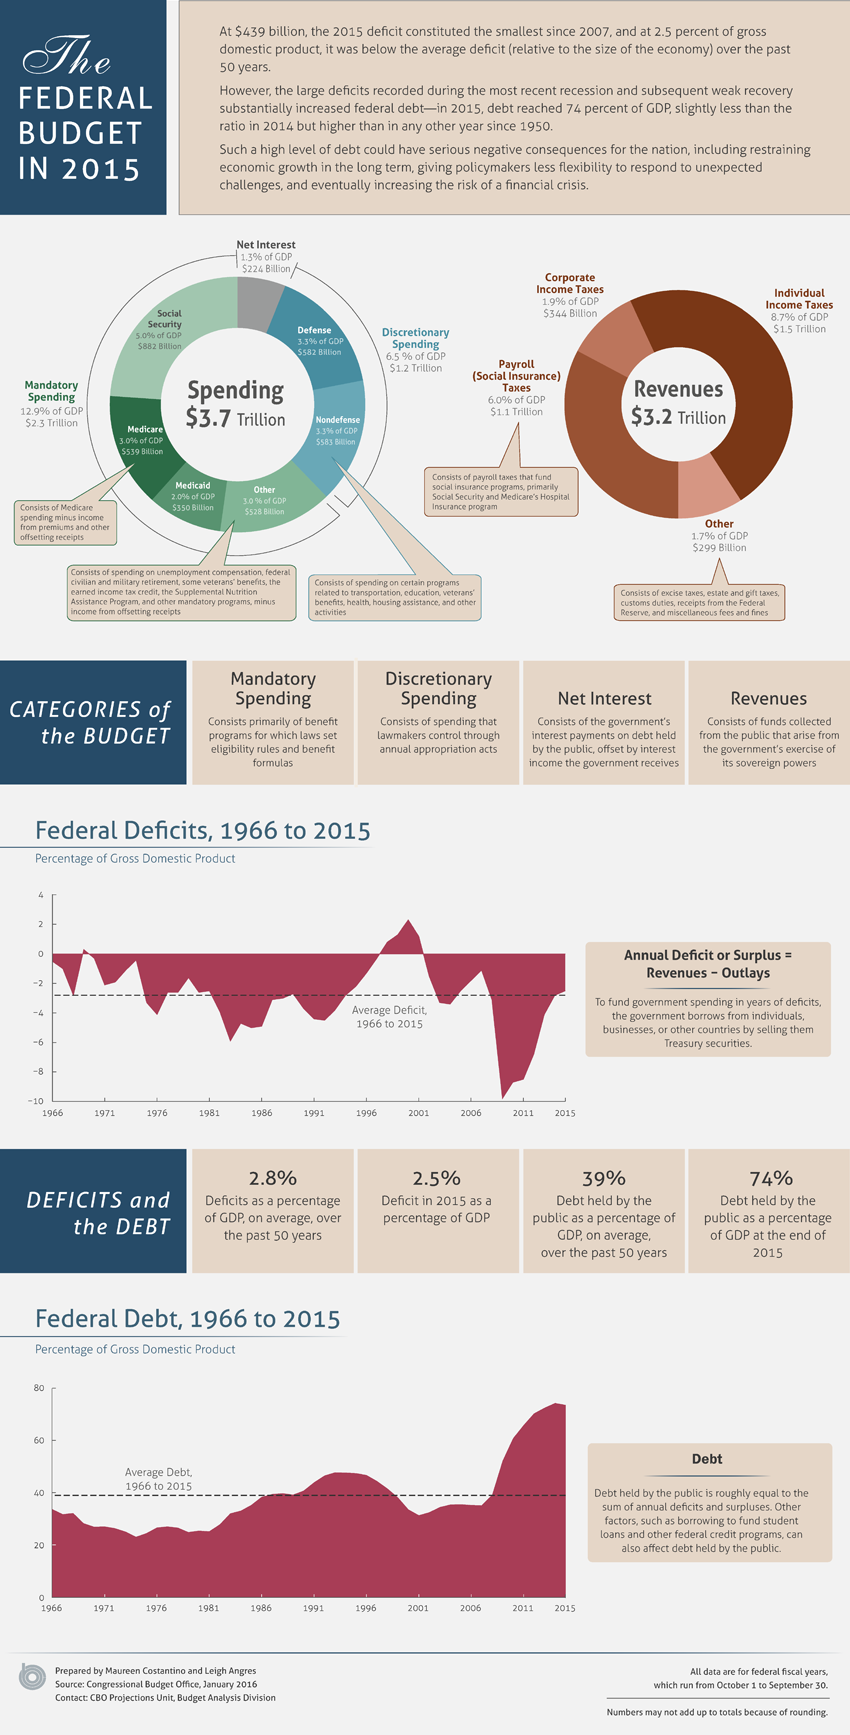 The Federal Budget in 2015 | Congressional Budget Office